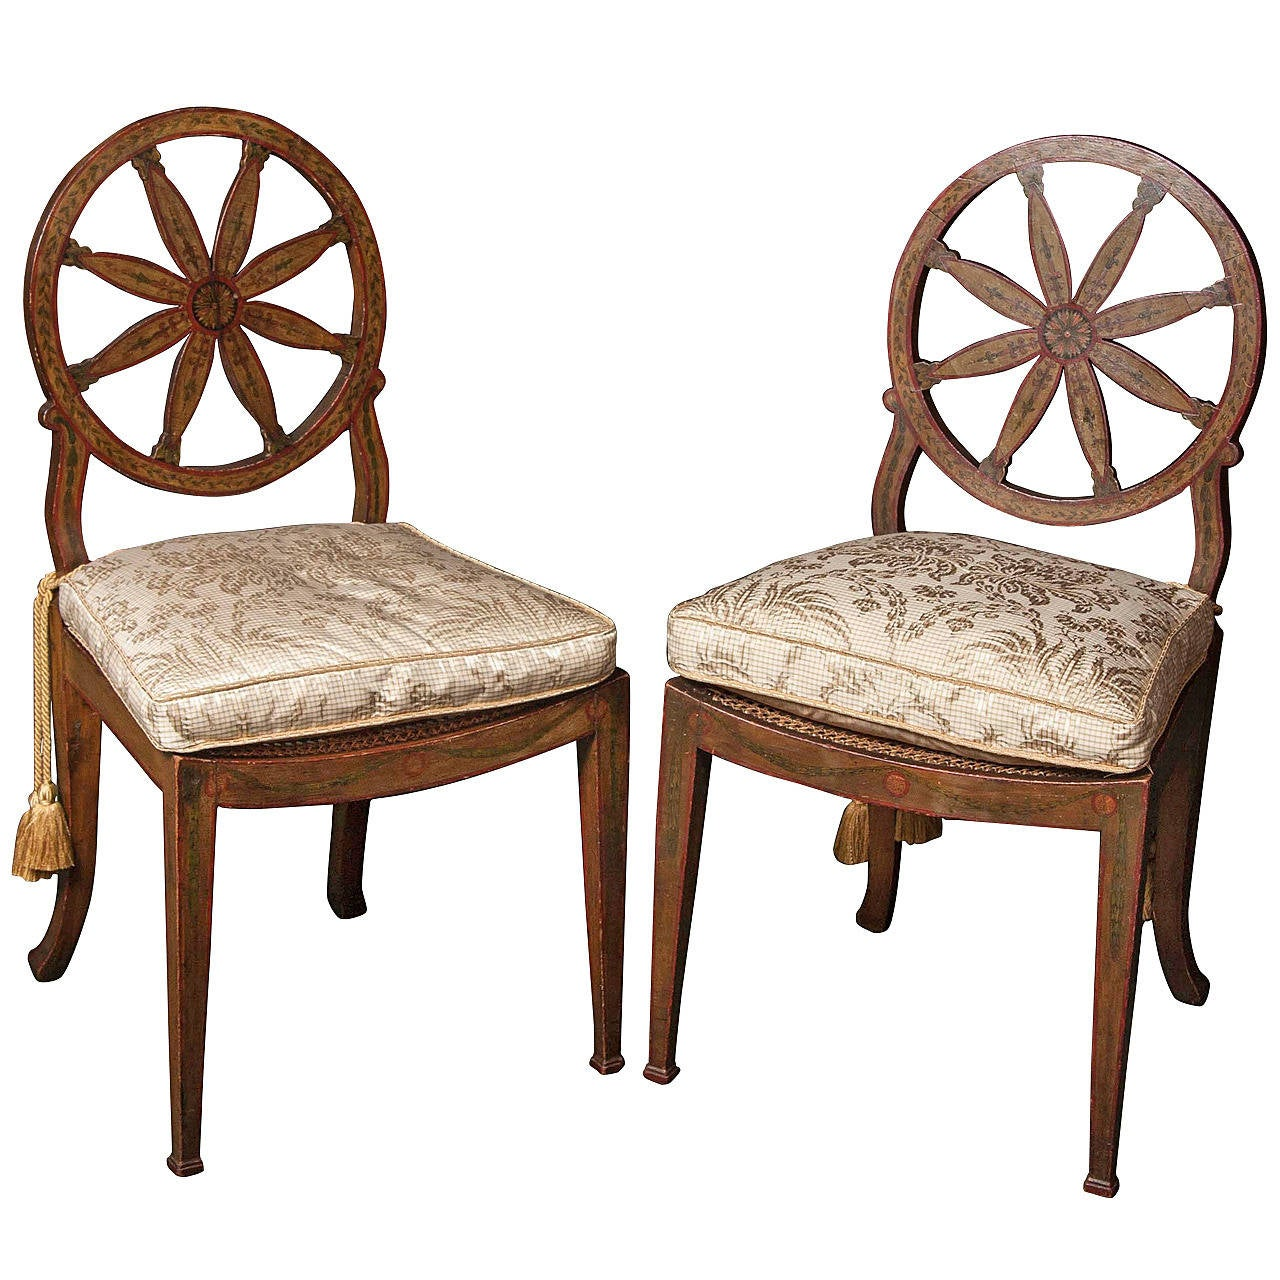 American Gothic Revival Furniture Characteristics: Pair Of Wheel-Back Painted Side Chairs At 1stdibs